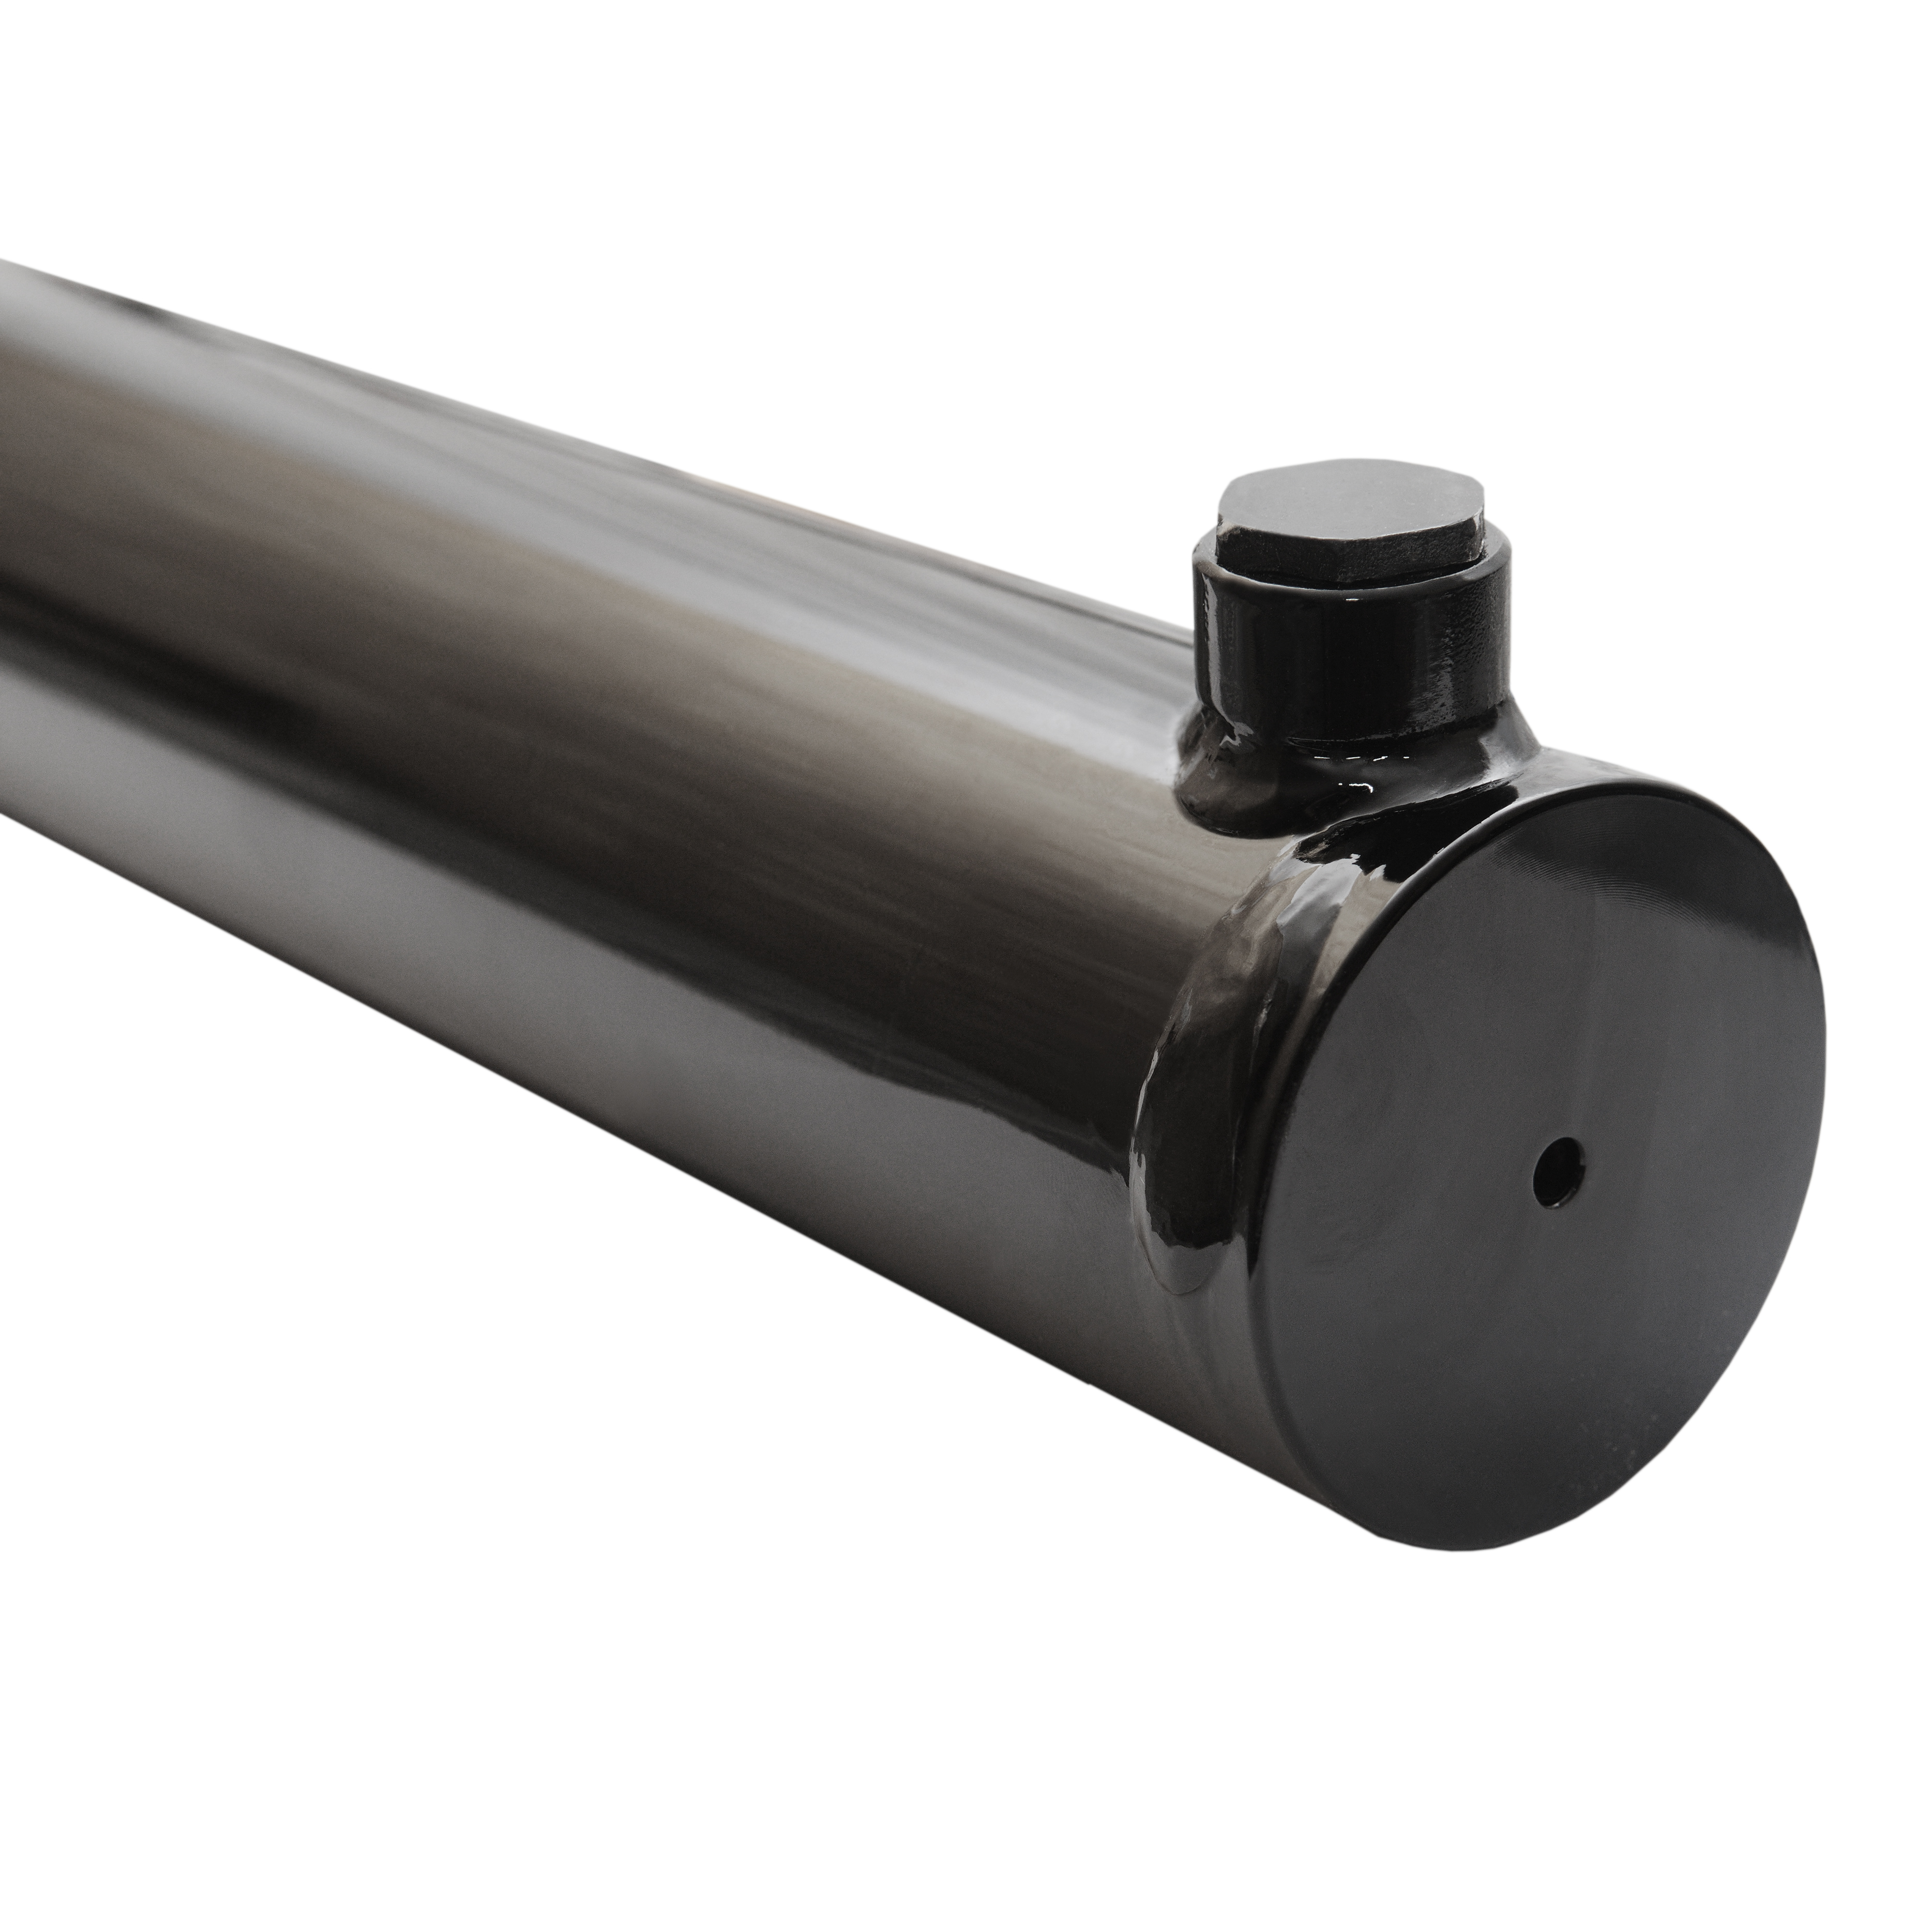 2.5 bore x 16 stroke hydraulic cylinder, welded universal double acting cylinder   Magister Hydraulics